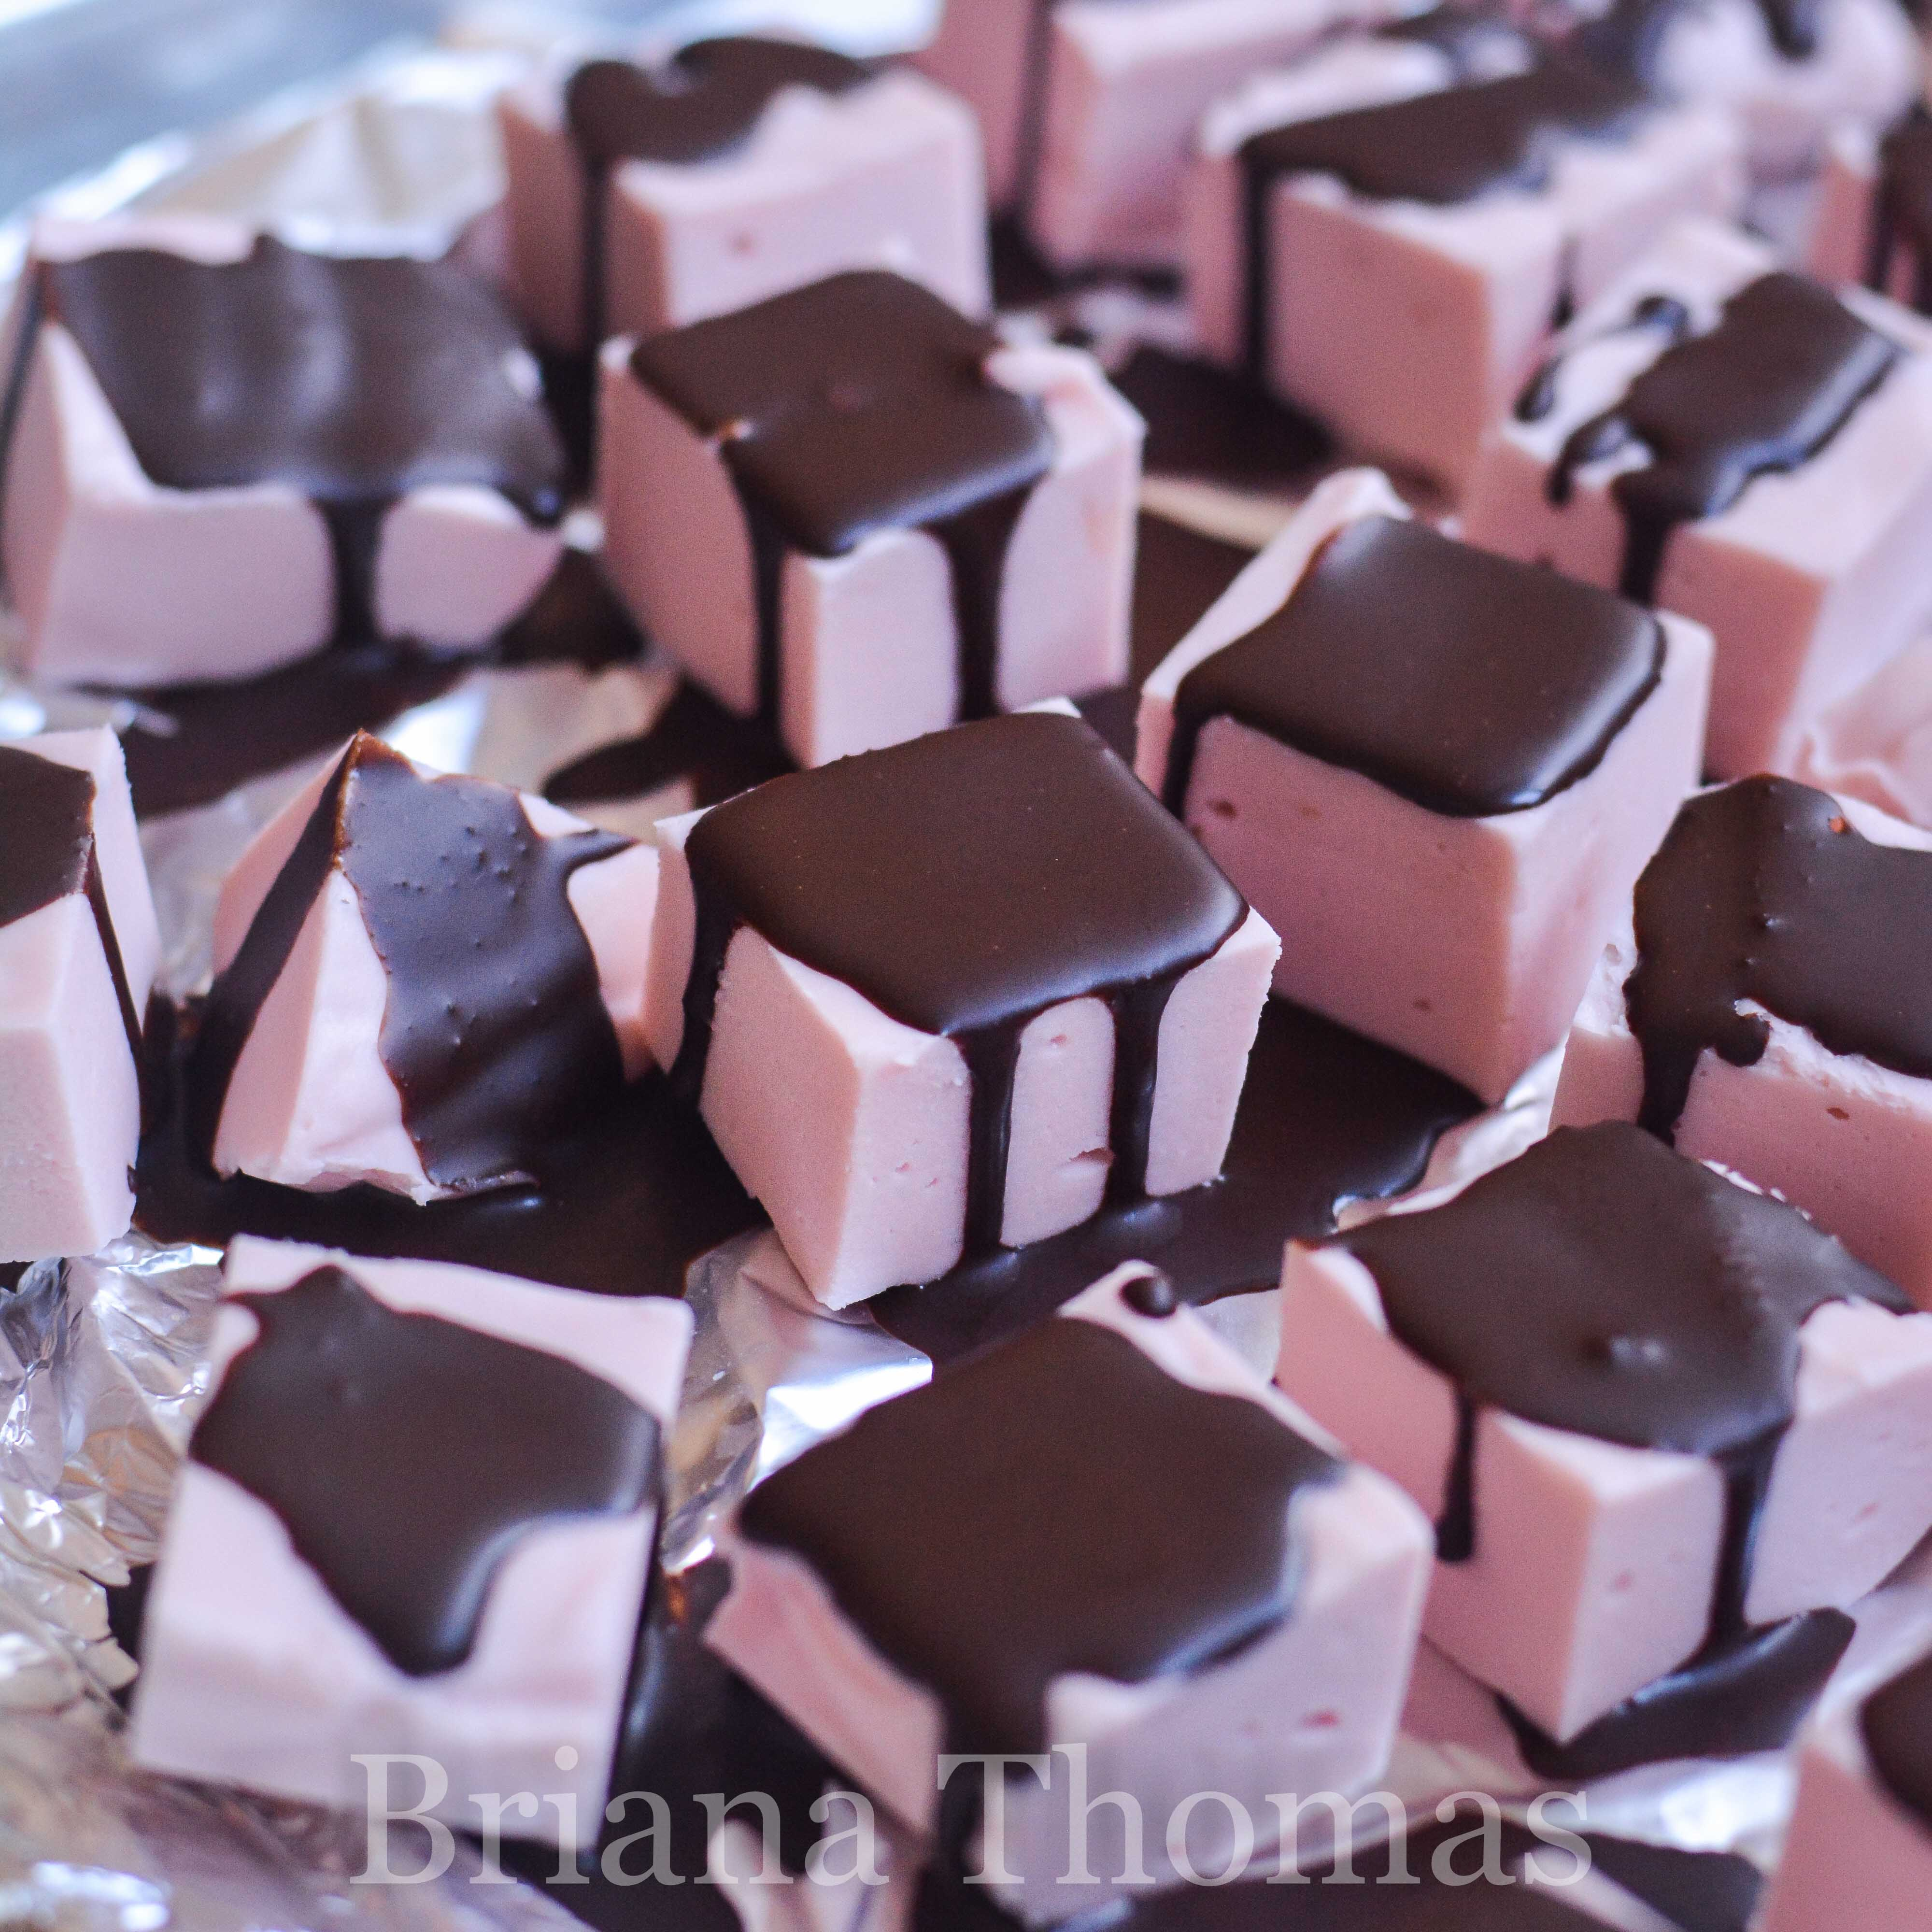 This Peppermint Truffle Fudge has a silky-smooth, marshmallowy texture! THM Deep S or S, low carb, sugar free, gluten/egg/nut free